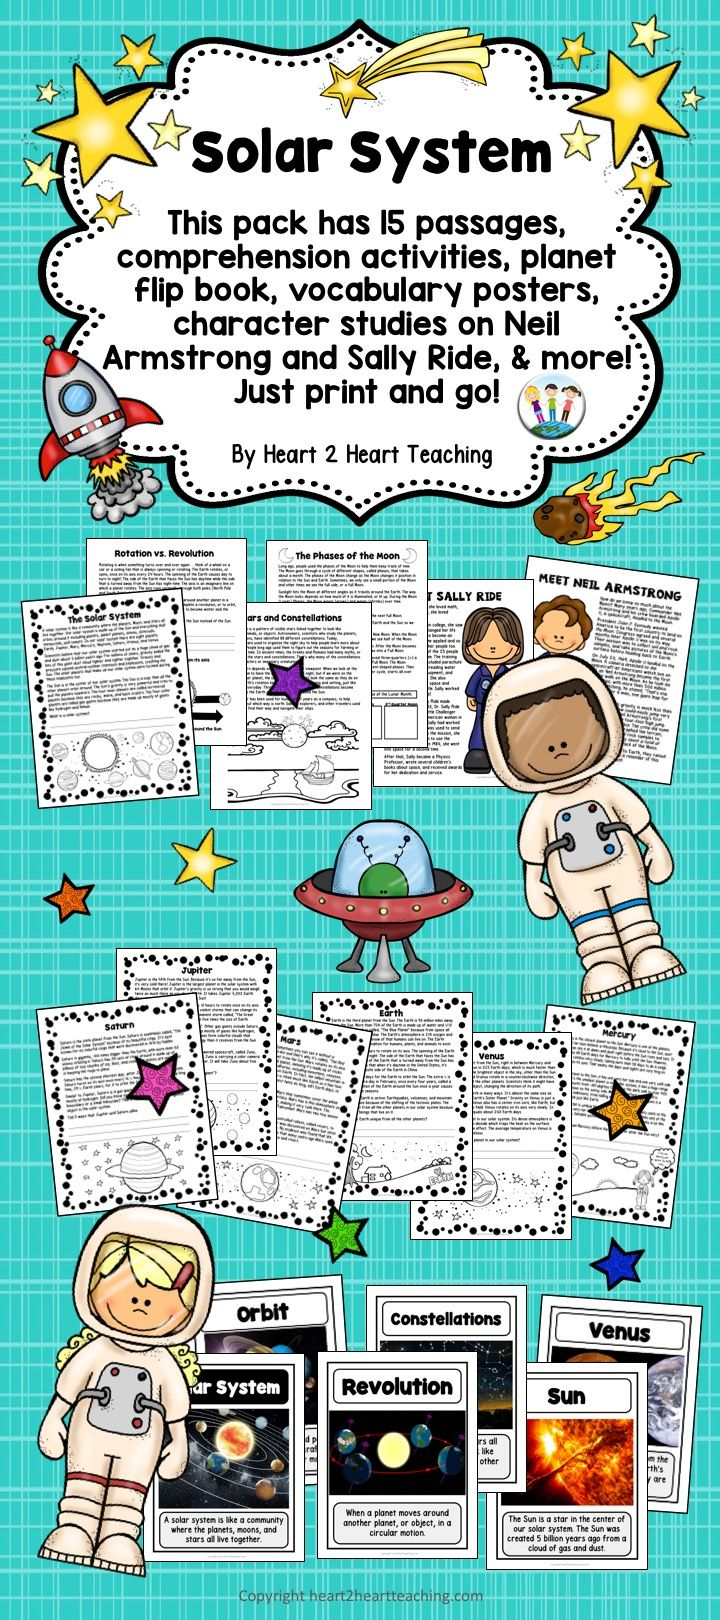 Solar System - Planets, Phases of the Moon, Neil Armstrong, Sally Ride & More